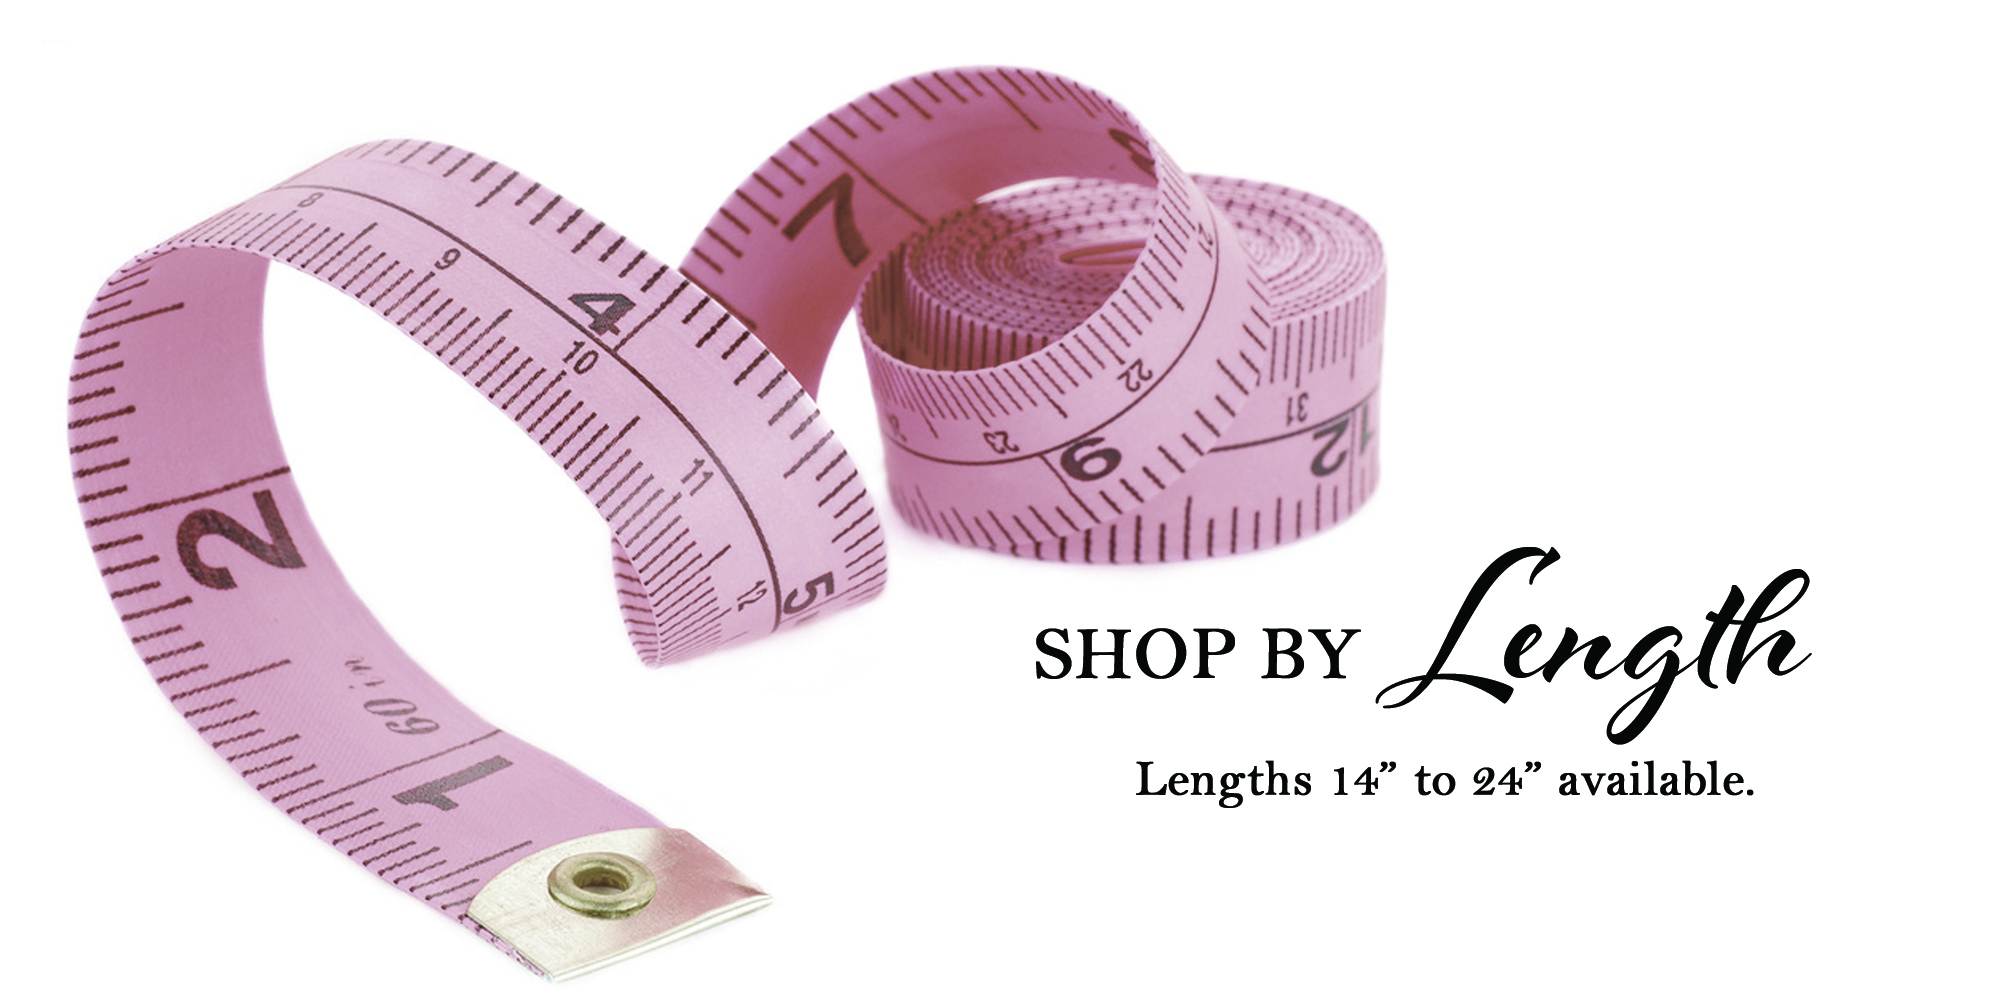 Shop by Length